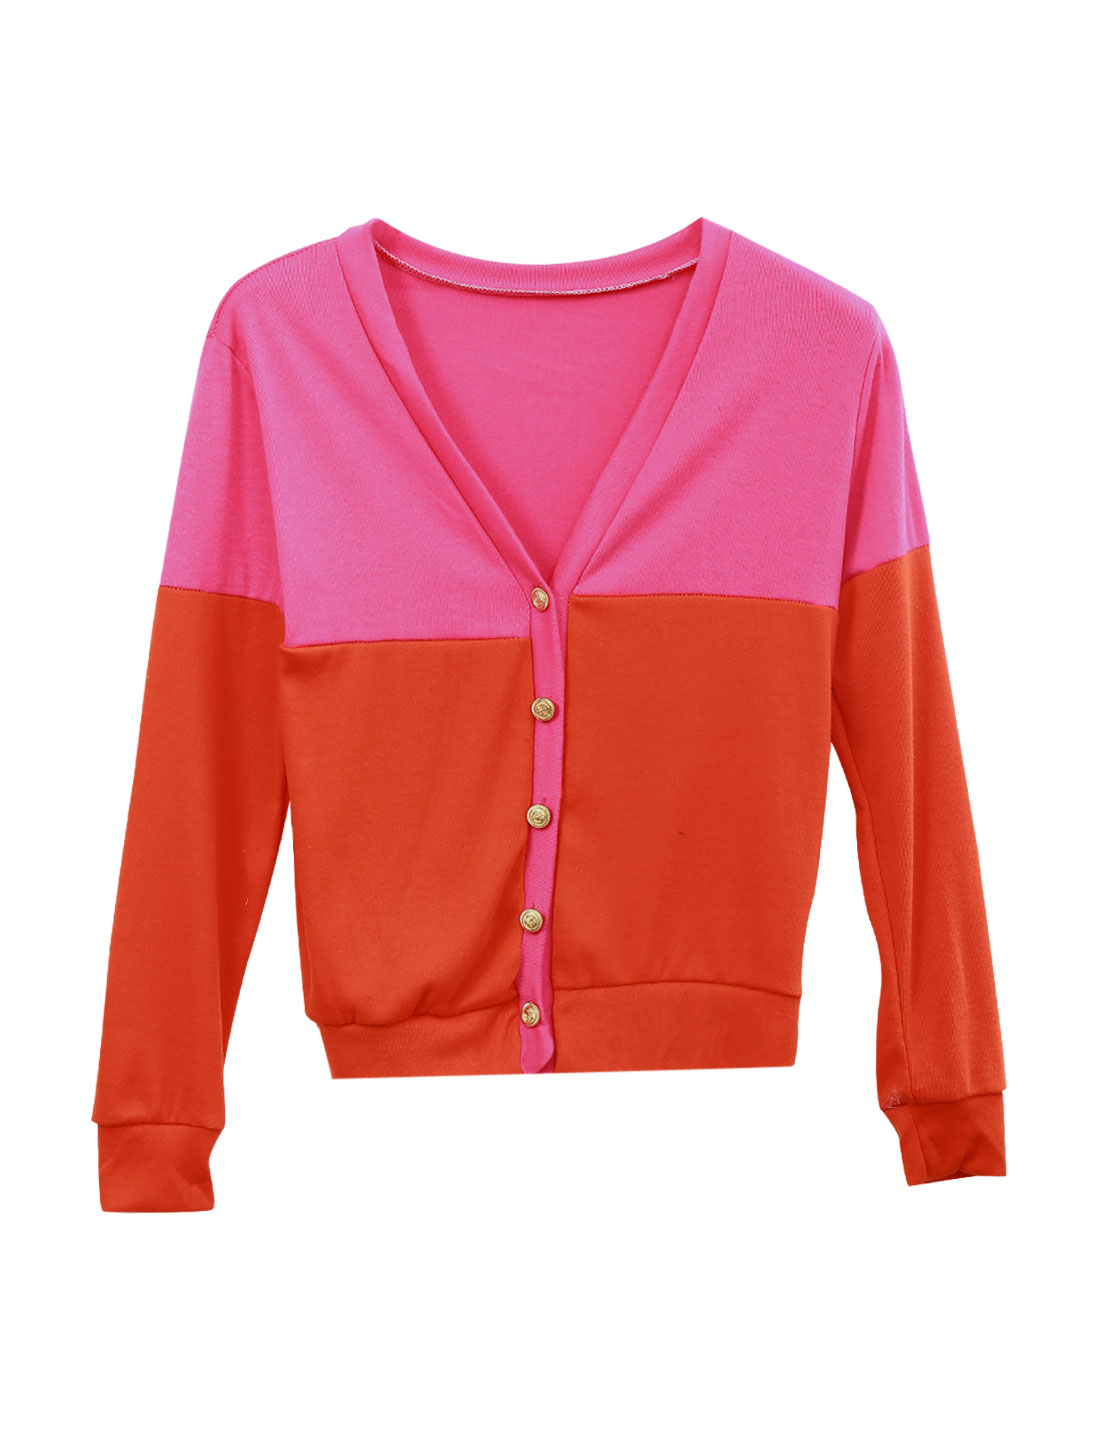 Lady Color Block Stylish Soft Casual Cardigan Deep Pink Orange XS